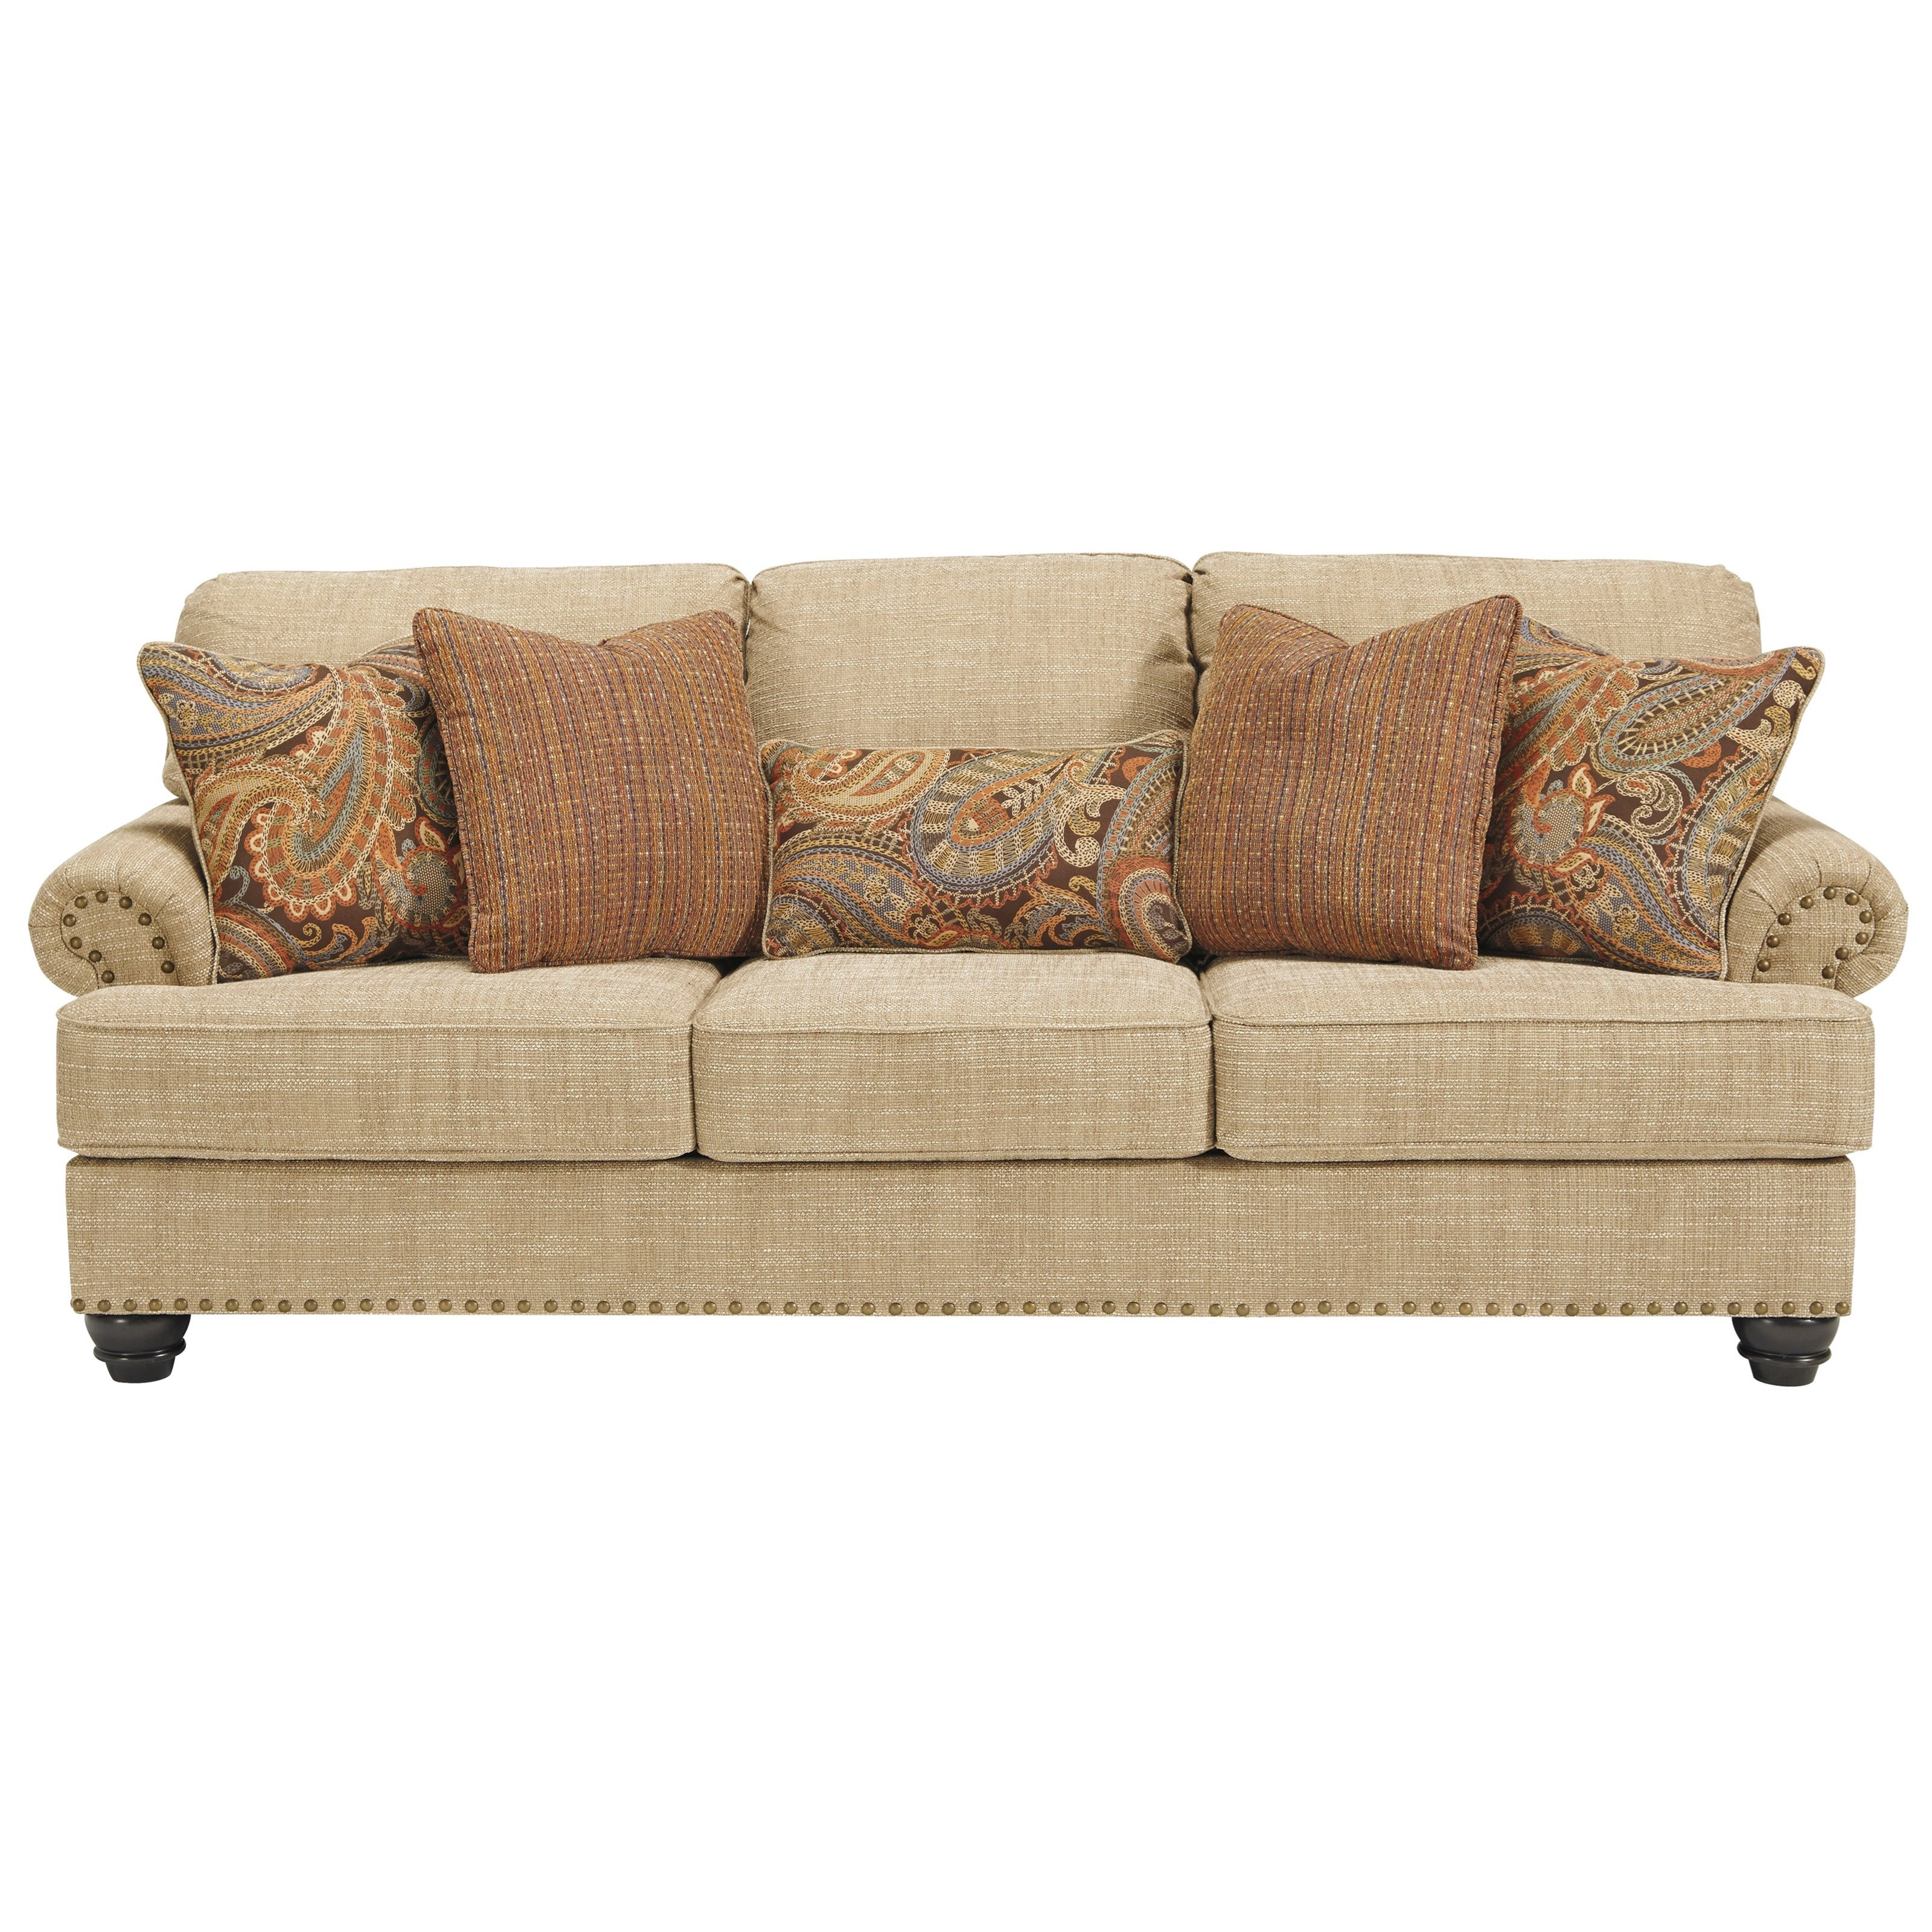 Candoro Queen Size Sofa Sleeper With Nail Head Trim By Benchcraft At John V Schultz Furniture